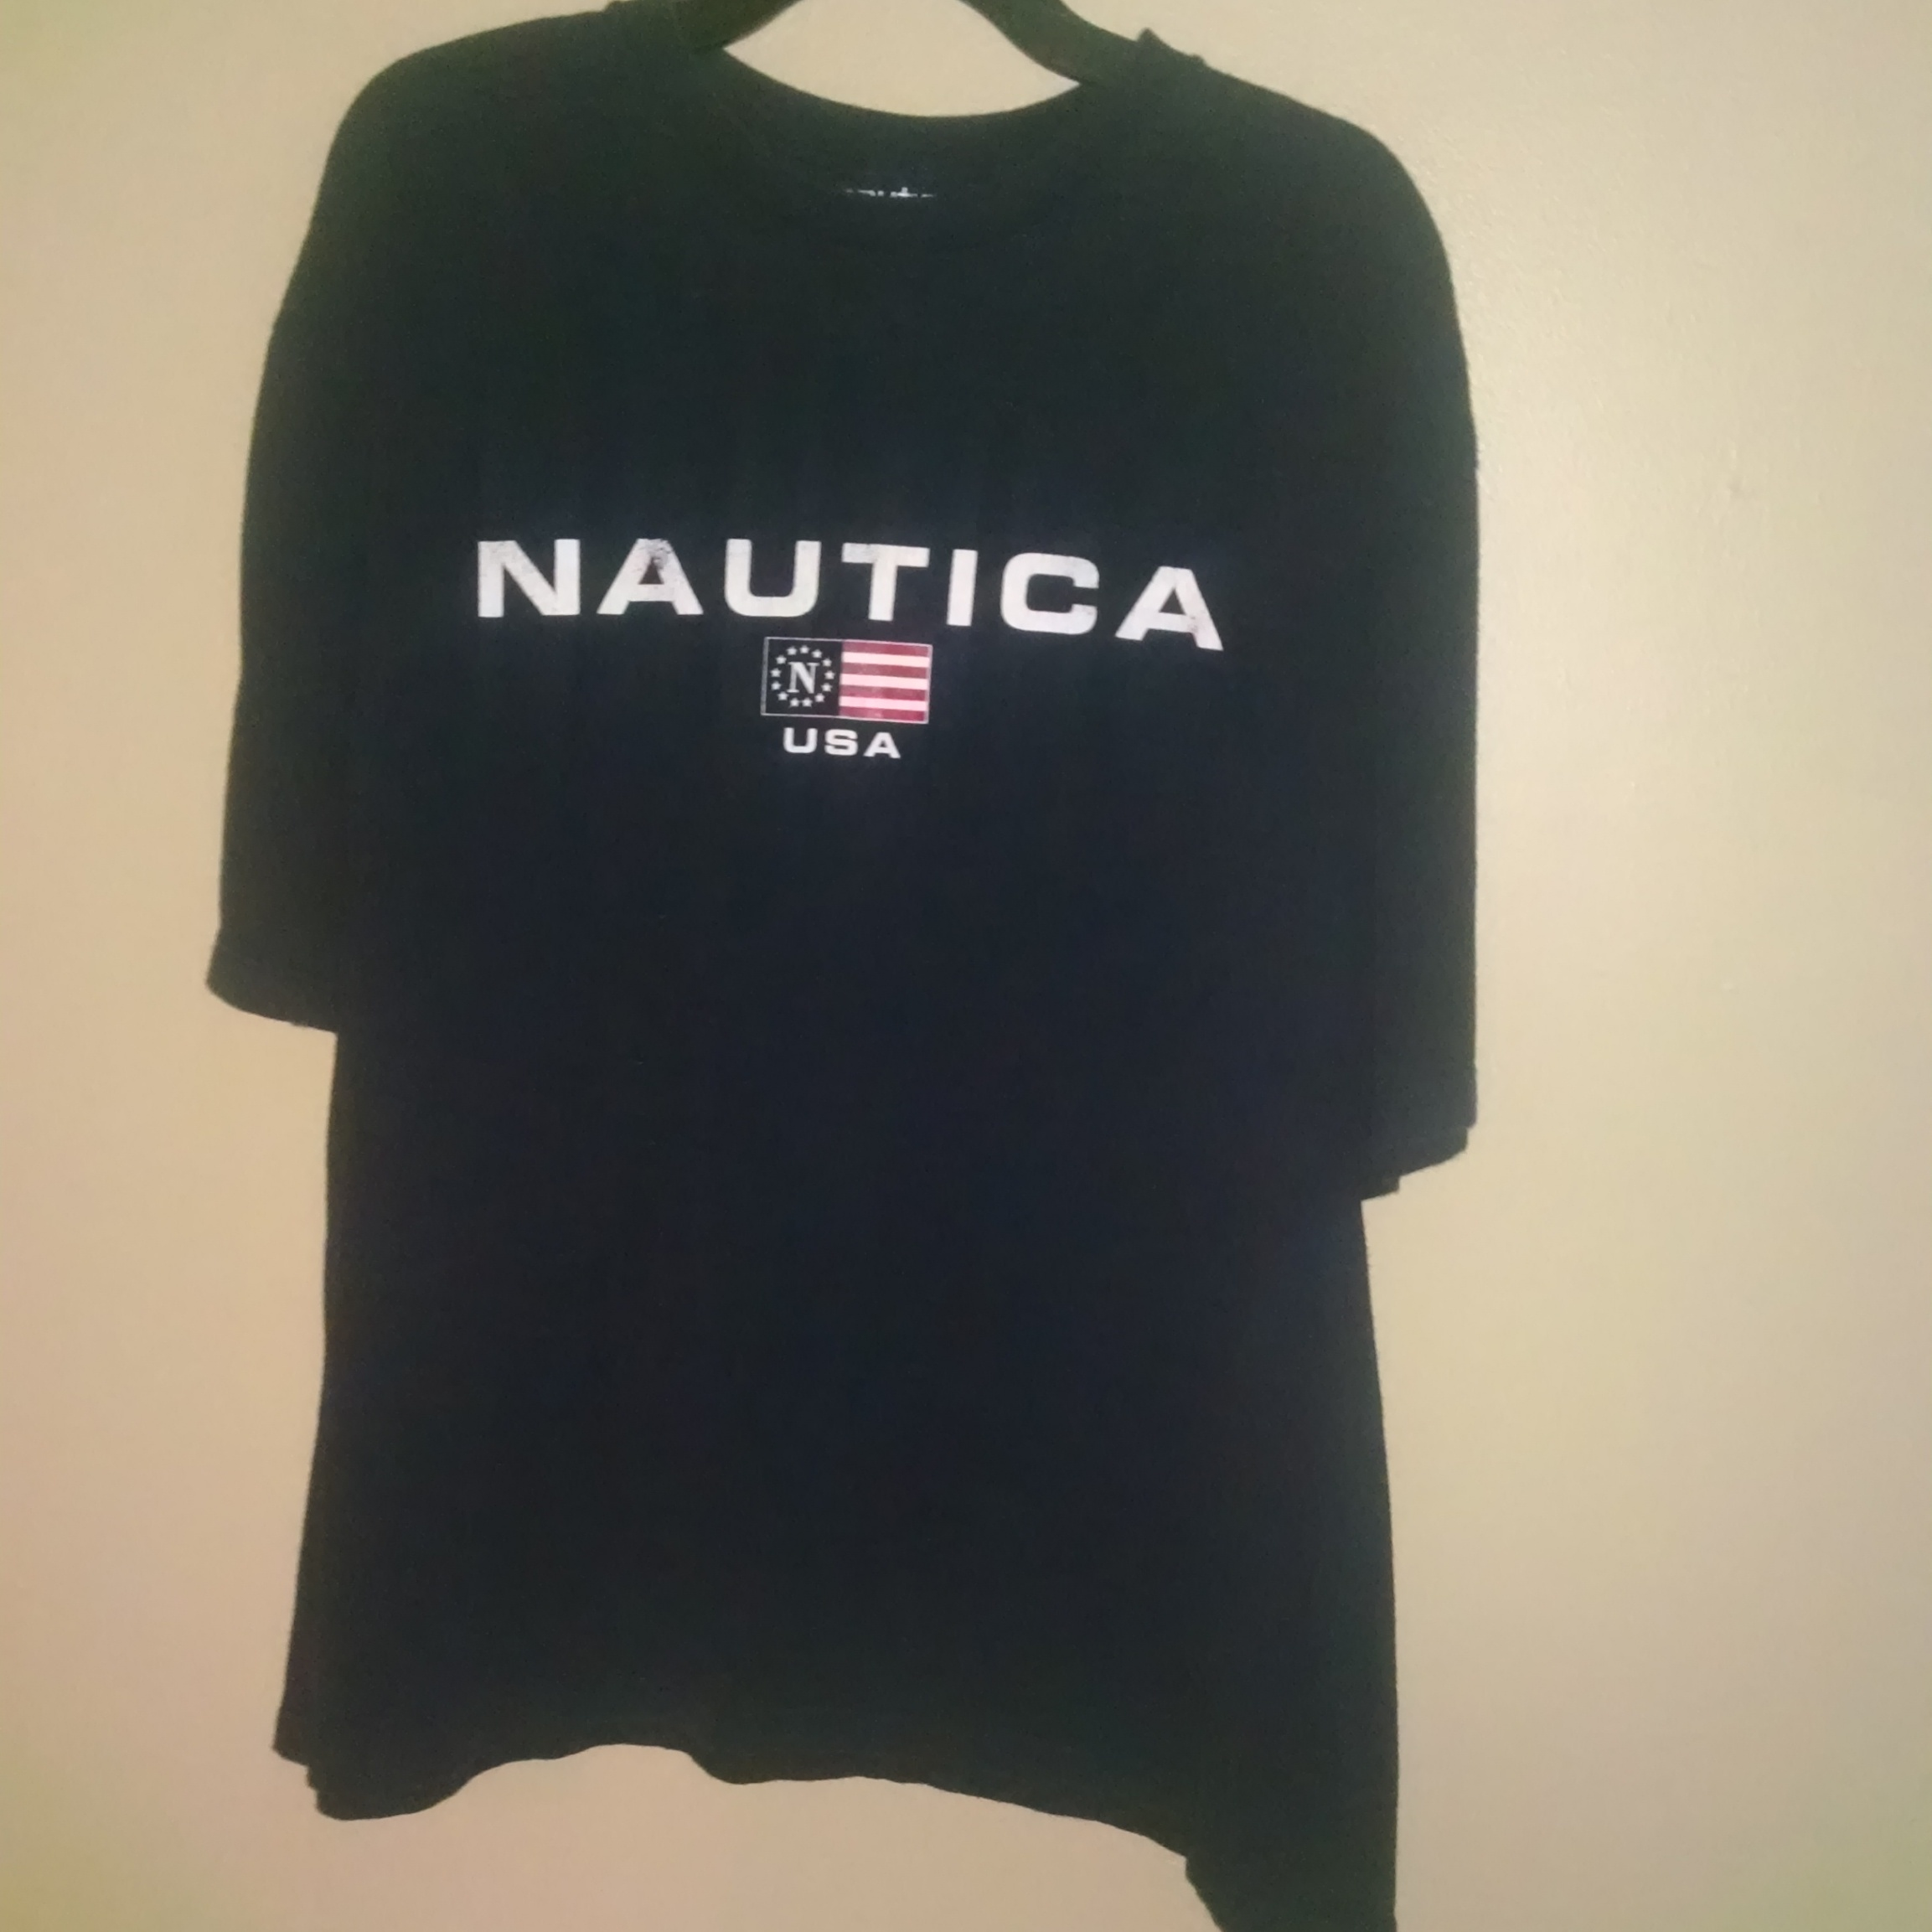 Nautica t shirt sixty three vtg online store powered for Nautica shirts on sale